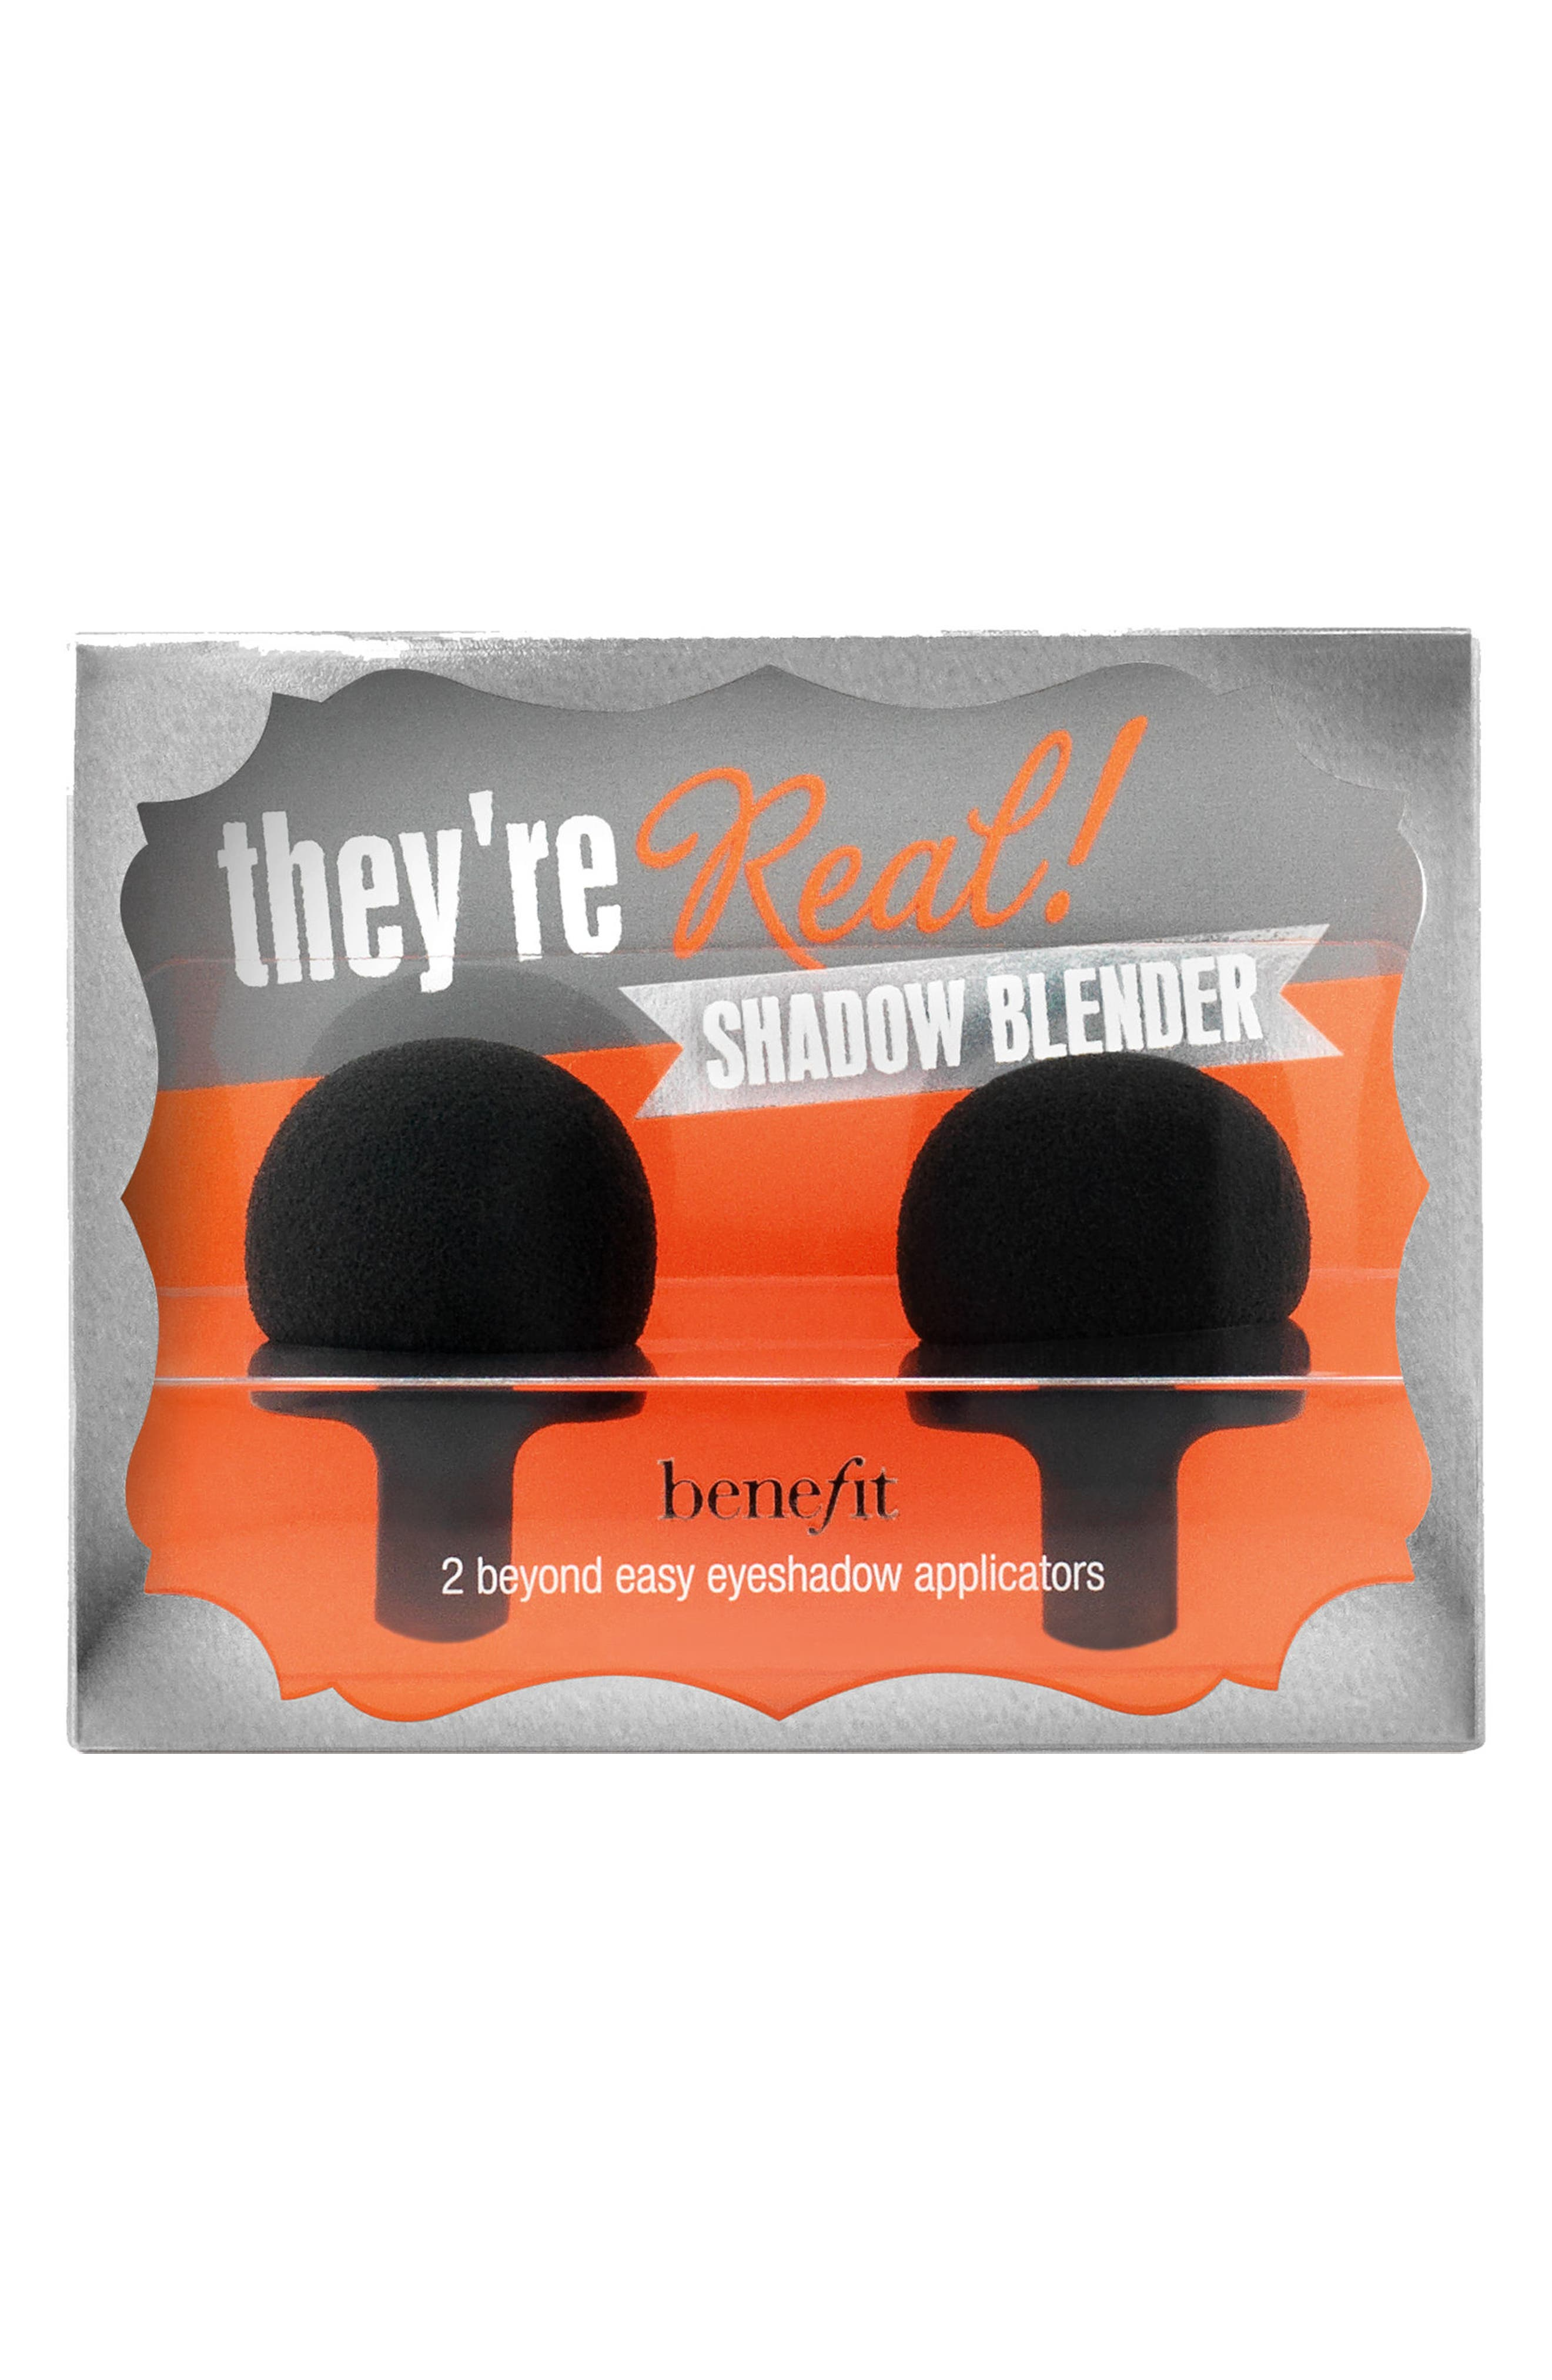 Benefit They're Real! ShadowBlender Duo Beyond Easy Eyeshadow Applicators,                         Main,                         color, No Color